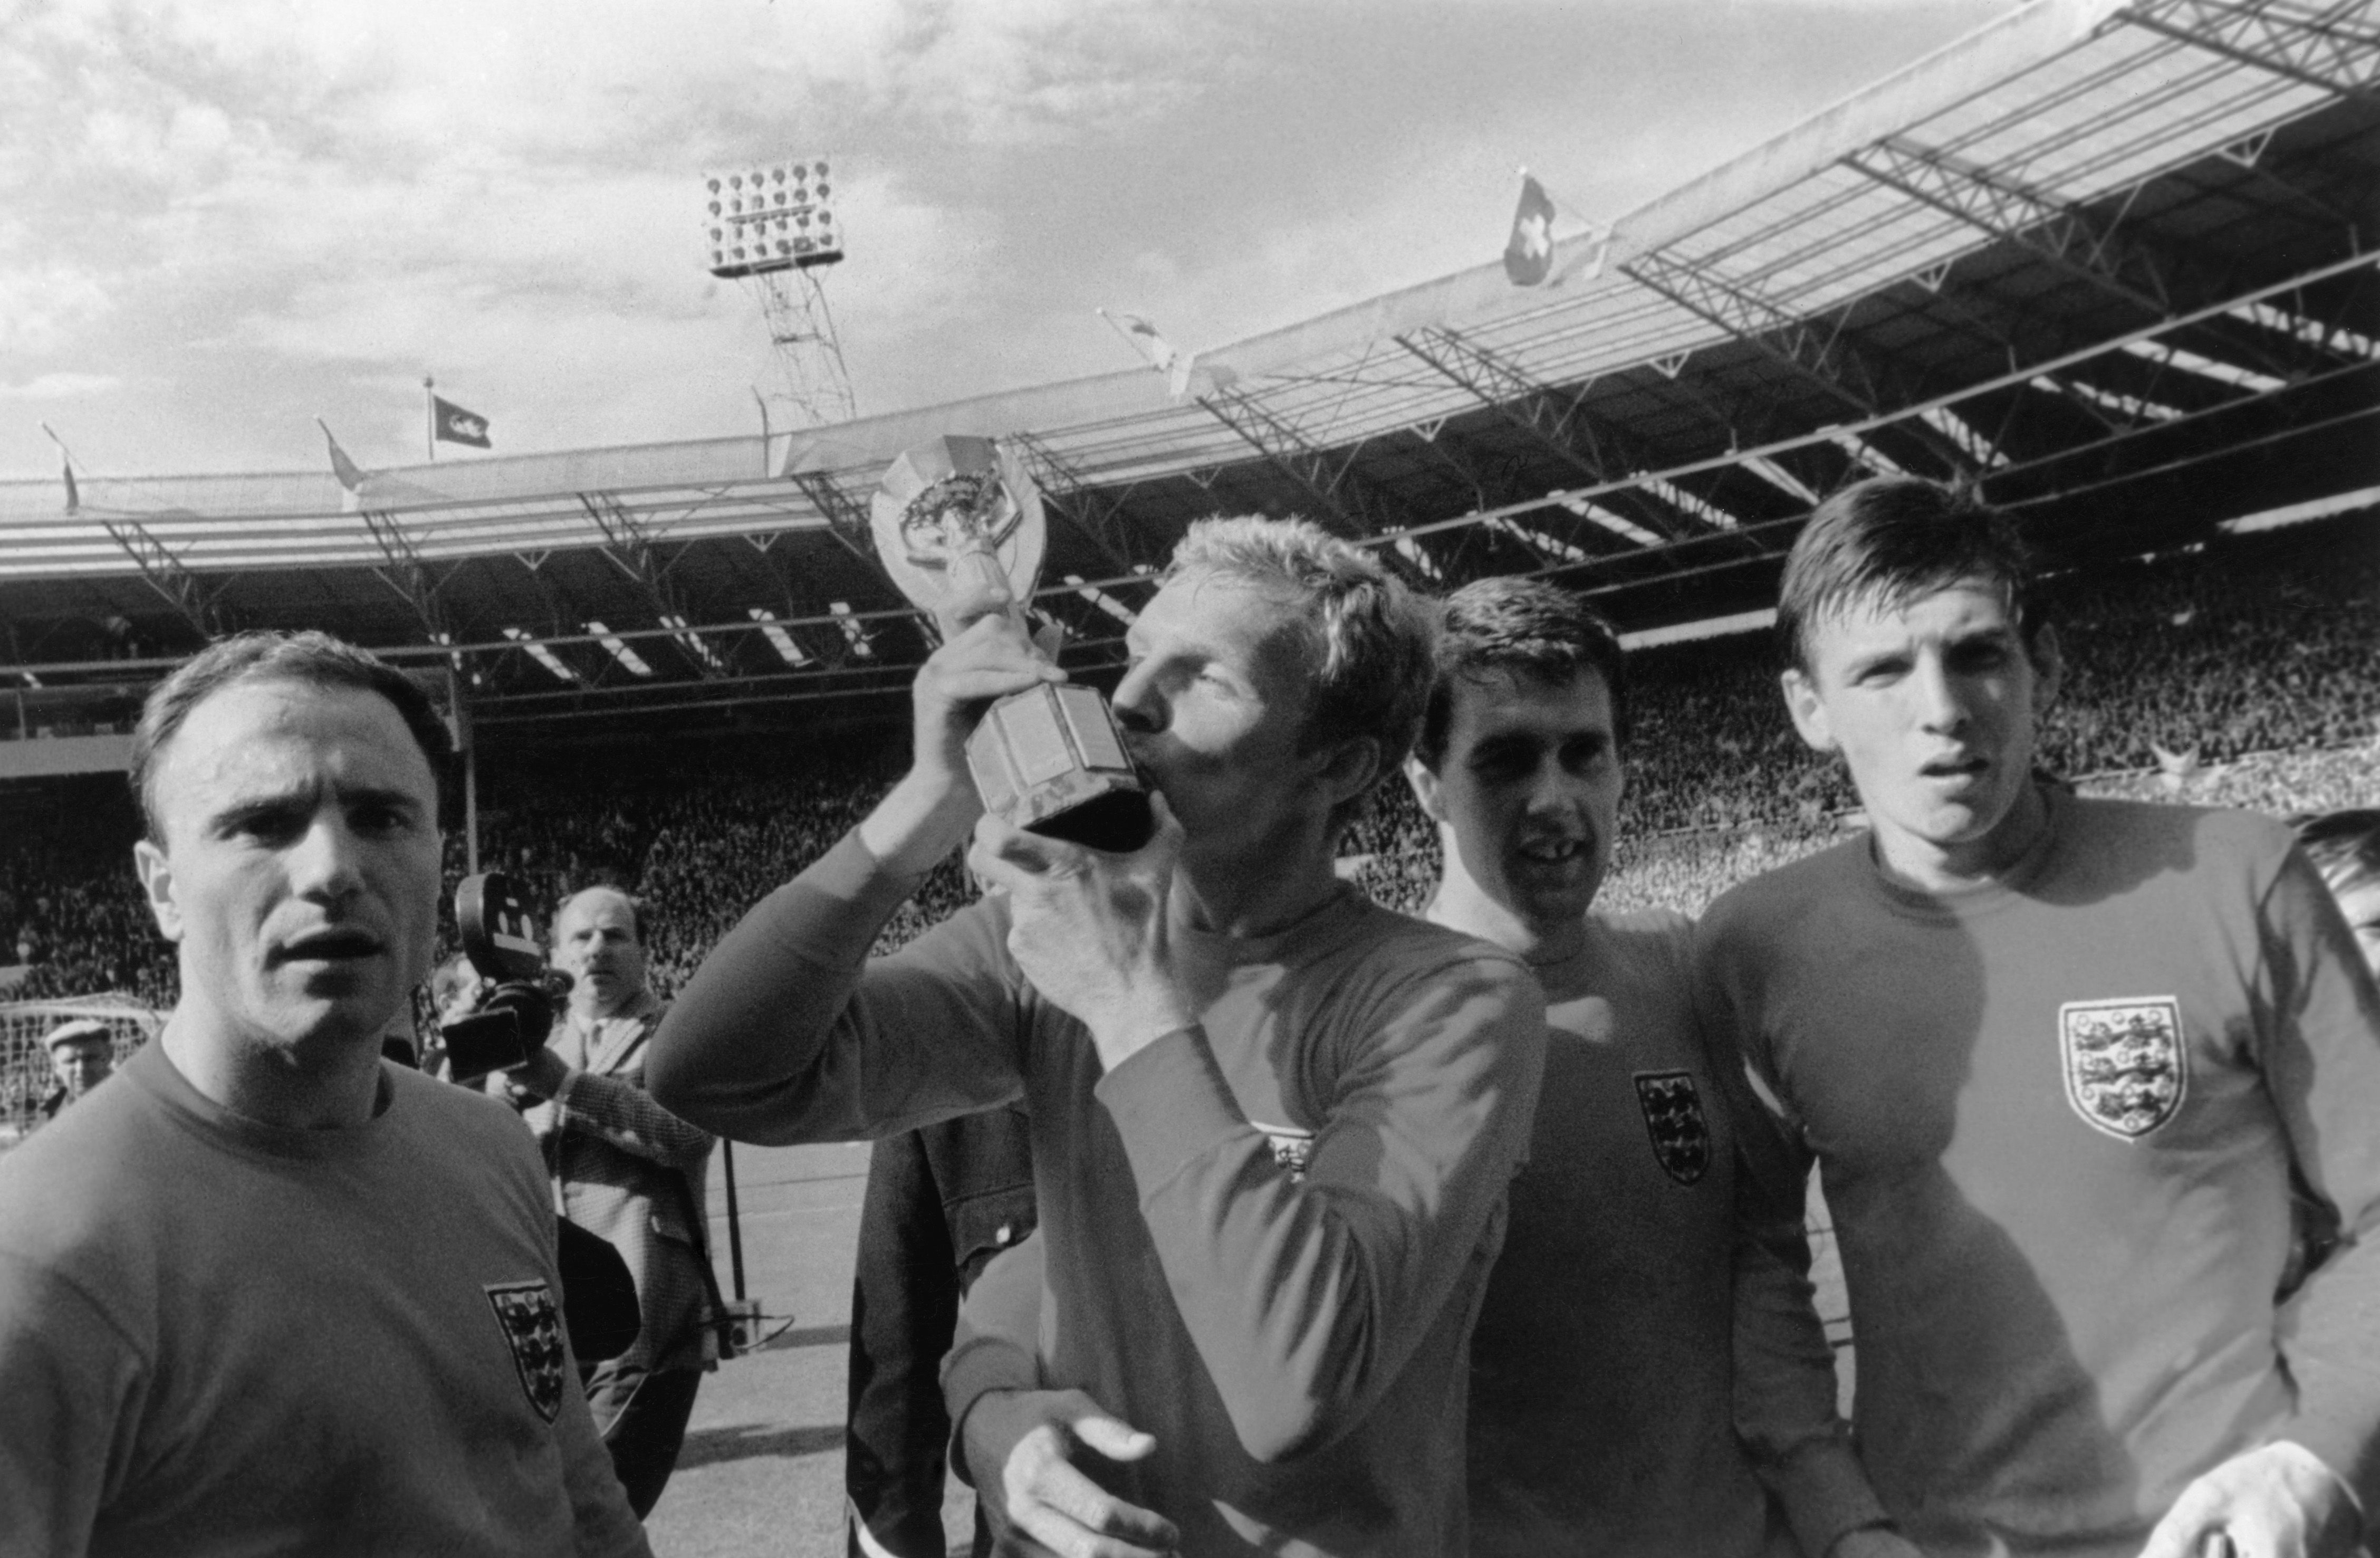 In pictures: England's 1966 football World Cup 4–2 win over West Germany, the team, the fans and the final at Wembley stadium on 30 July - History Extra